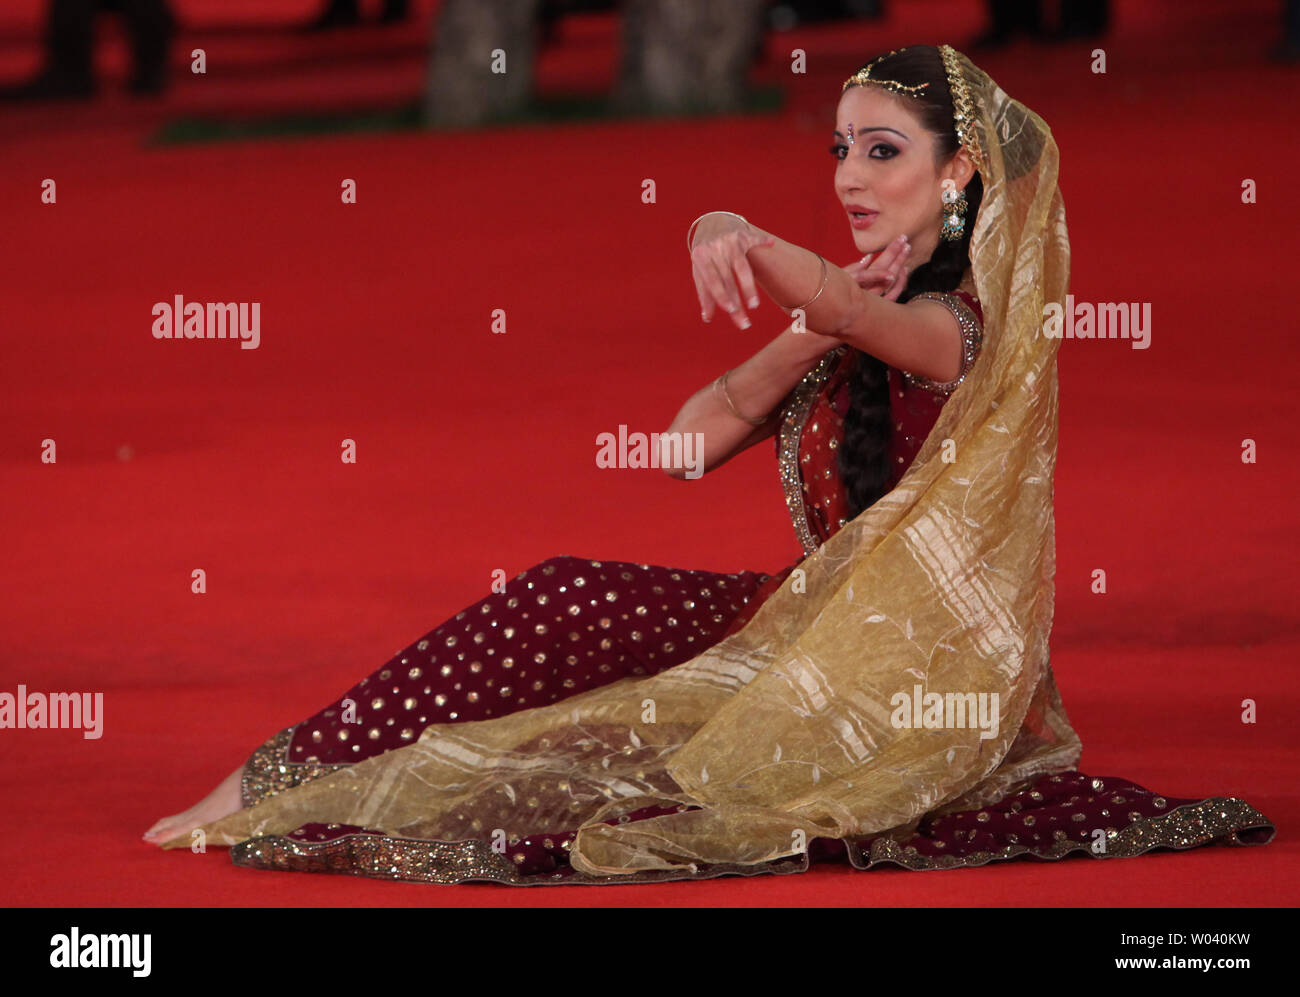 An Indian dancer performs on the red carpet before a